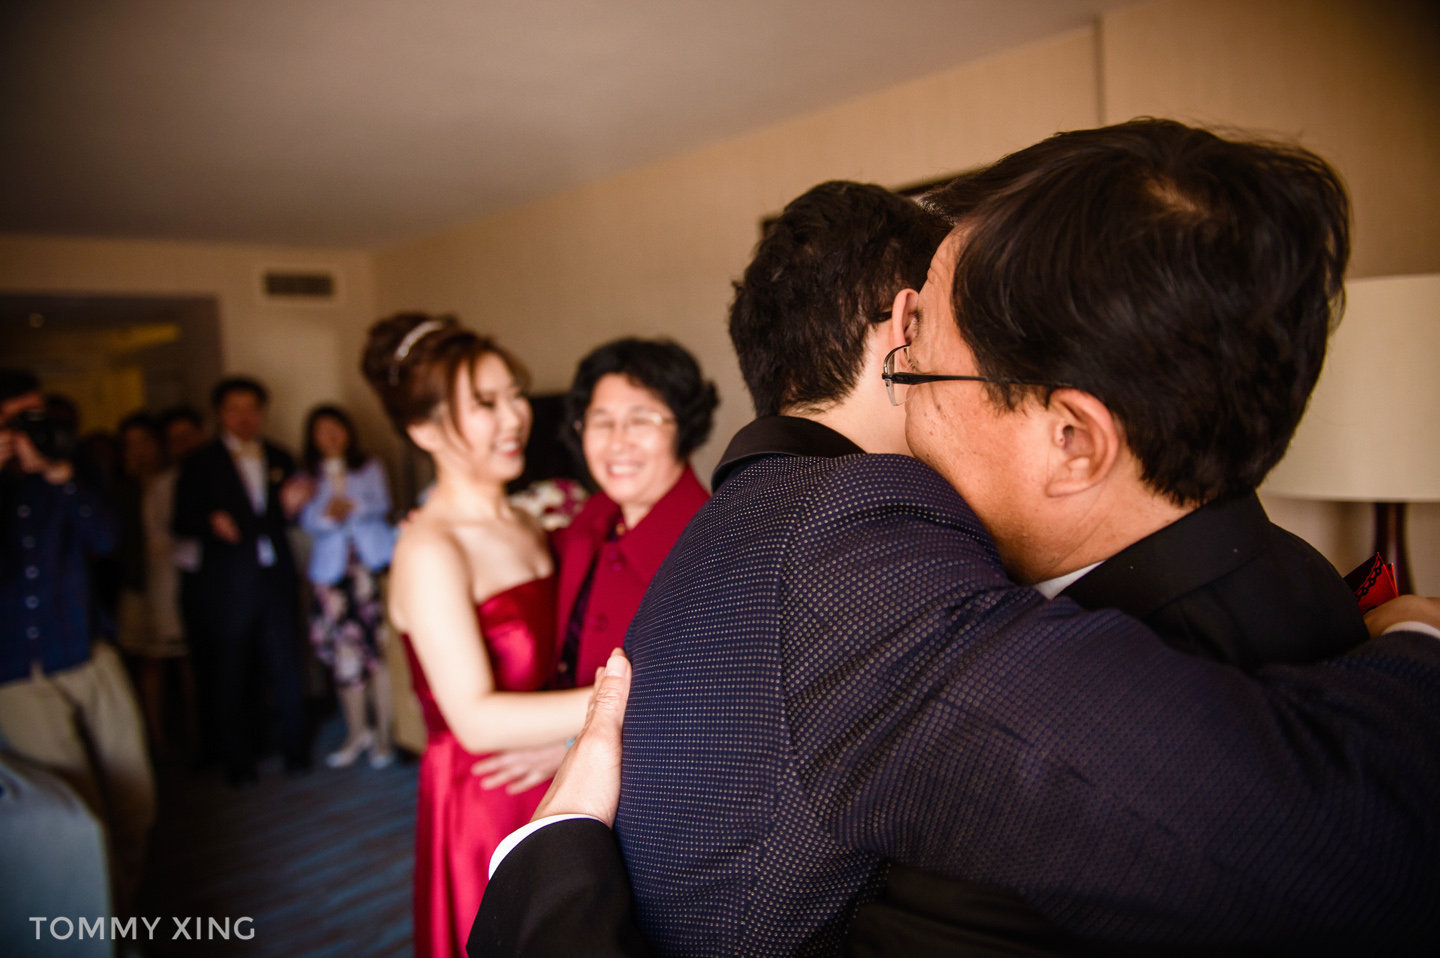 Los Angeles Wedding Photographer 洛杉矶婚礼婚纱摄影师 Tommy Xing-66.JPG